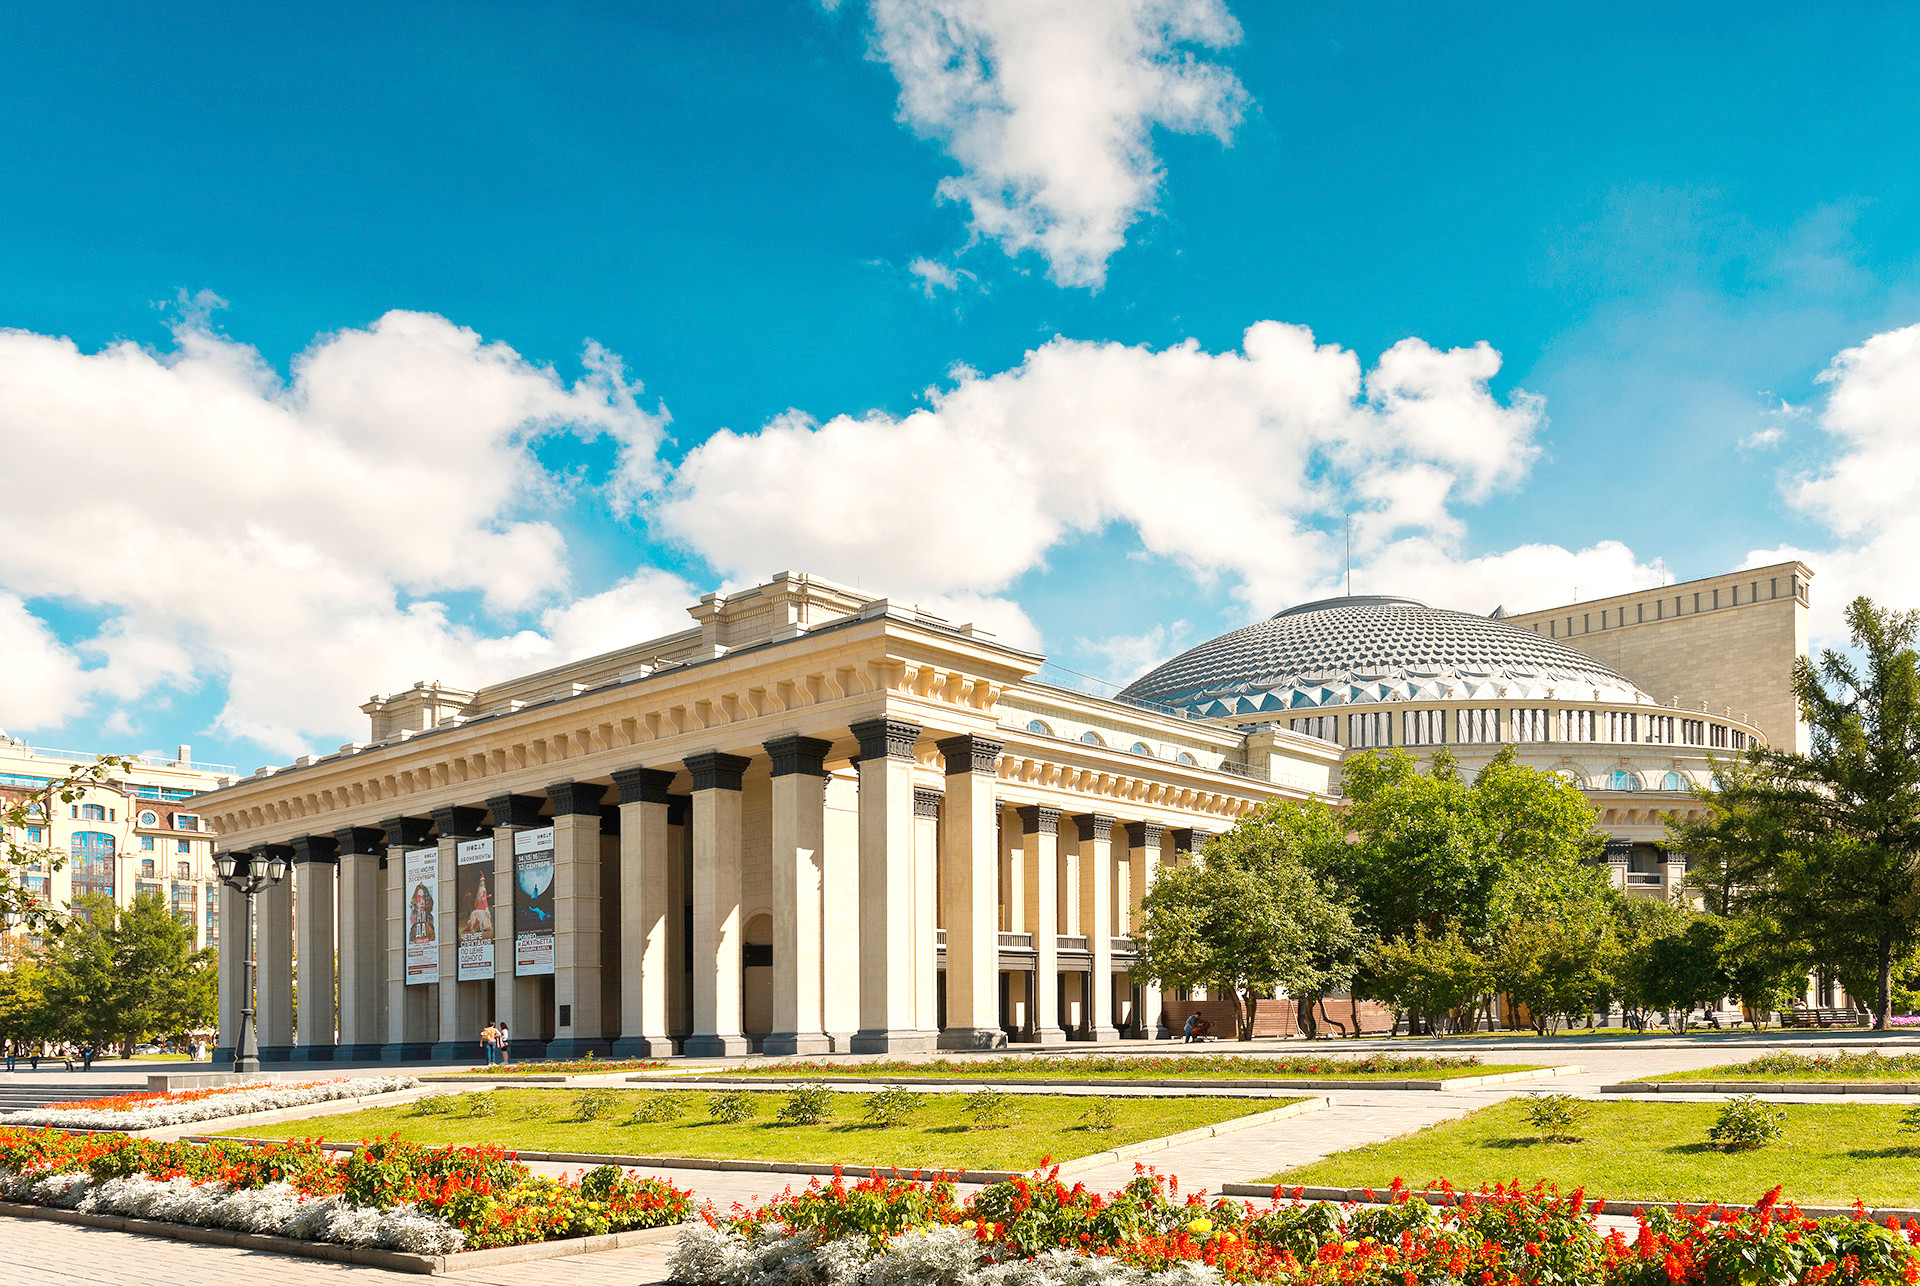 Novosibirsk State Academic Opera and Ballet Theater.